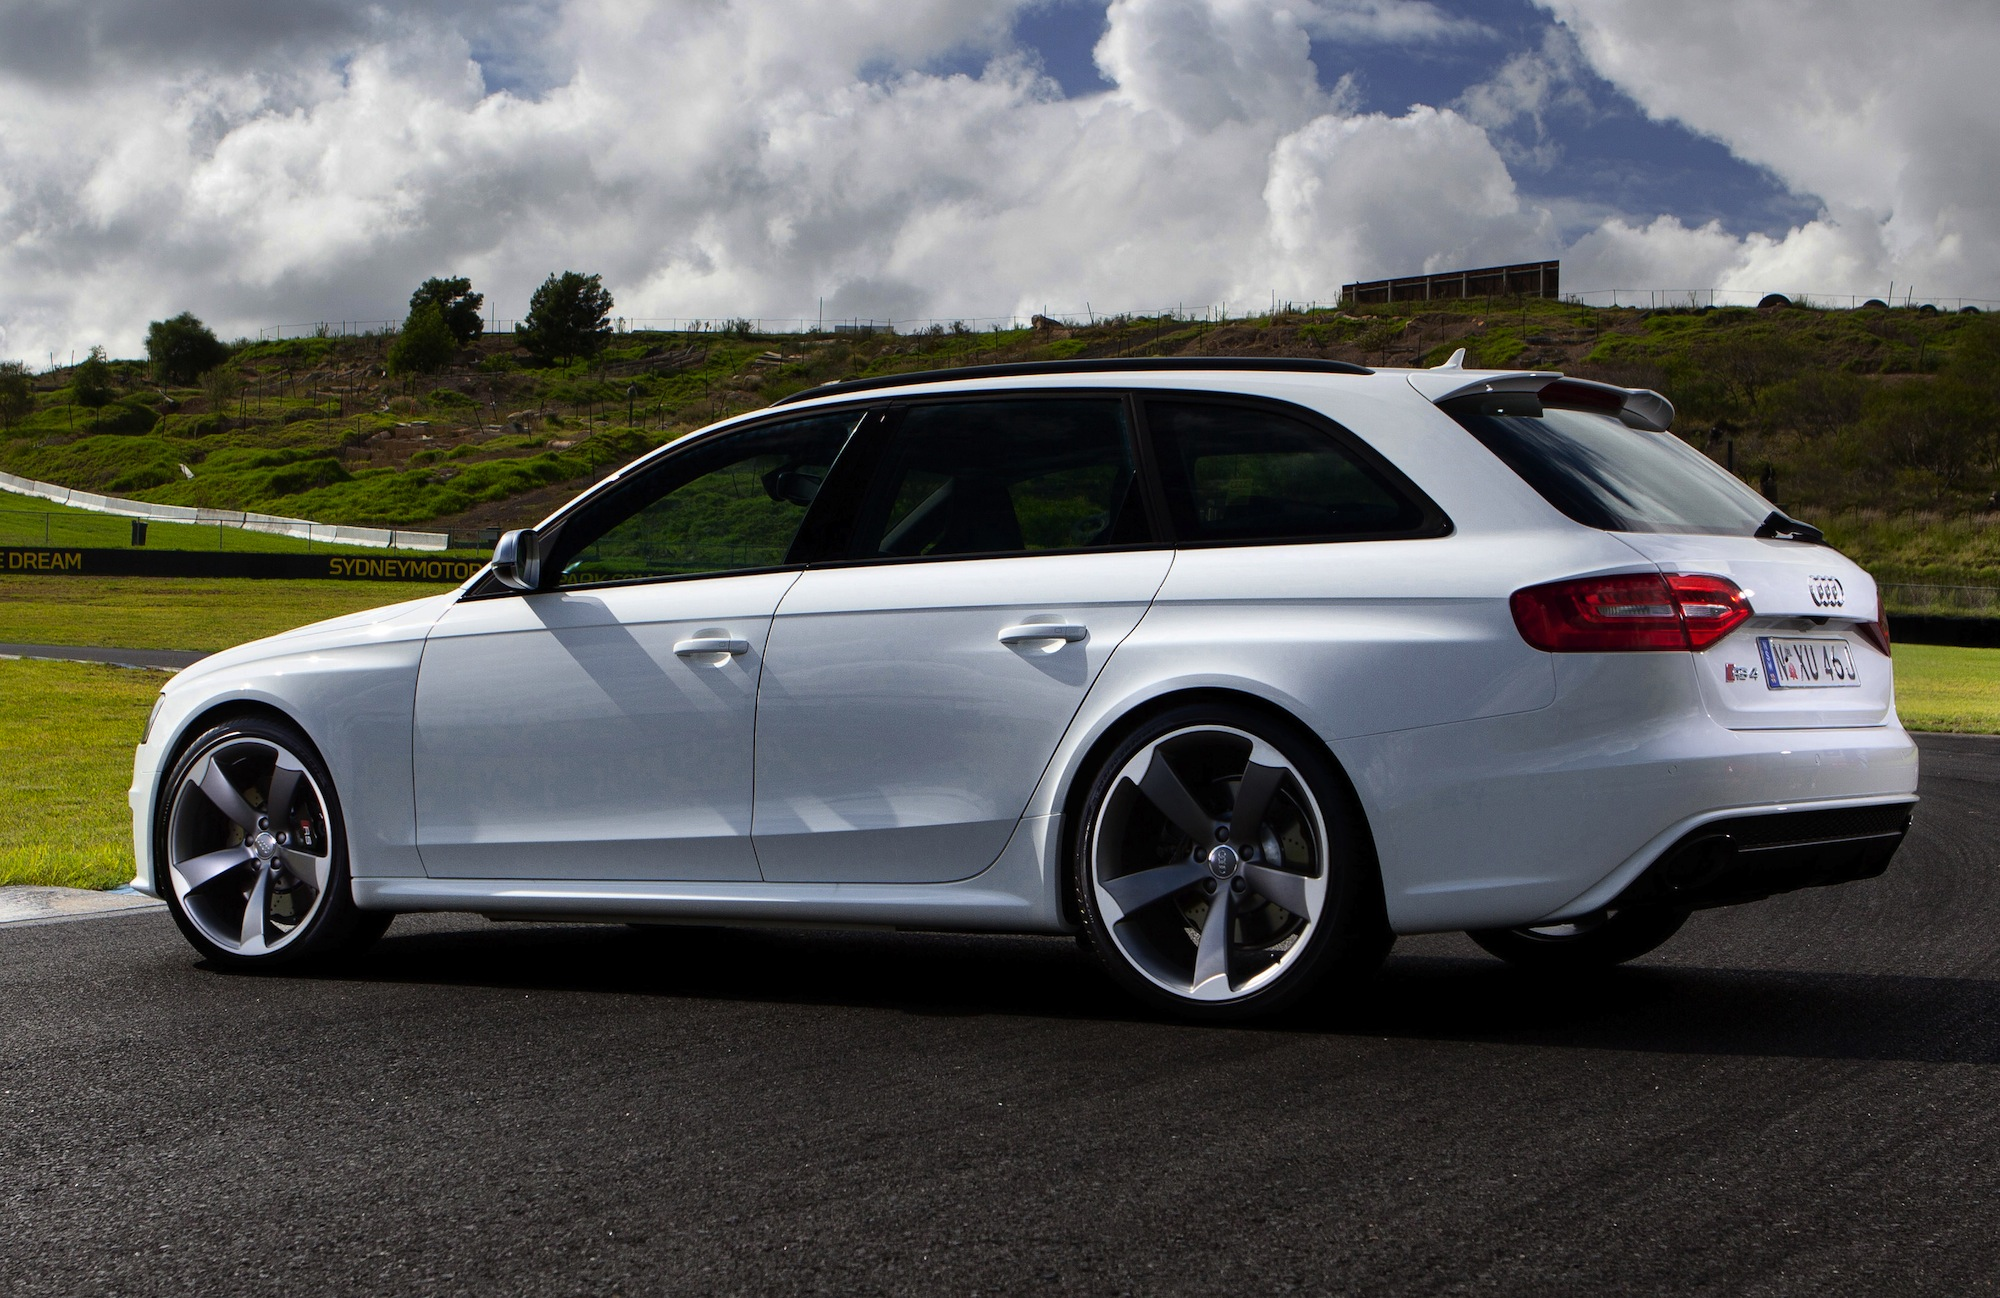 audi rs4 images #13